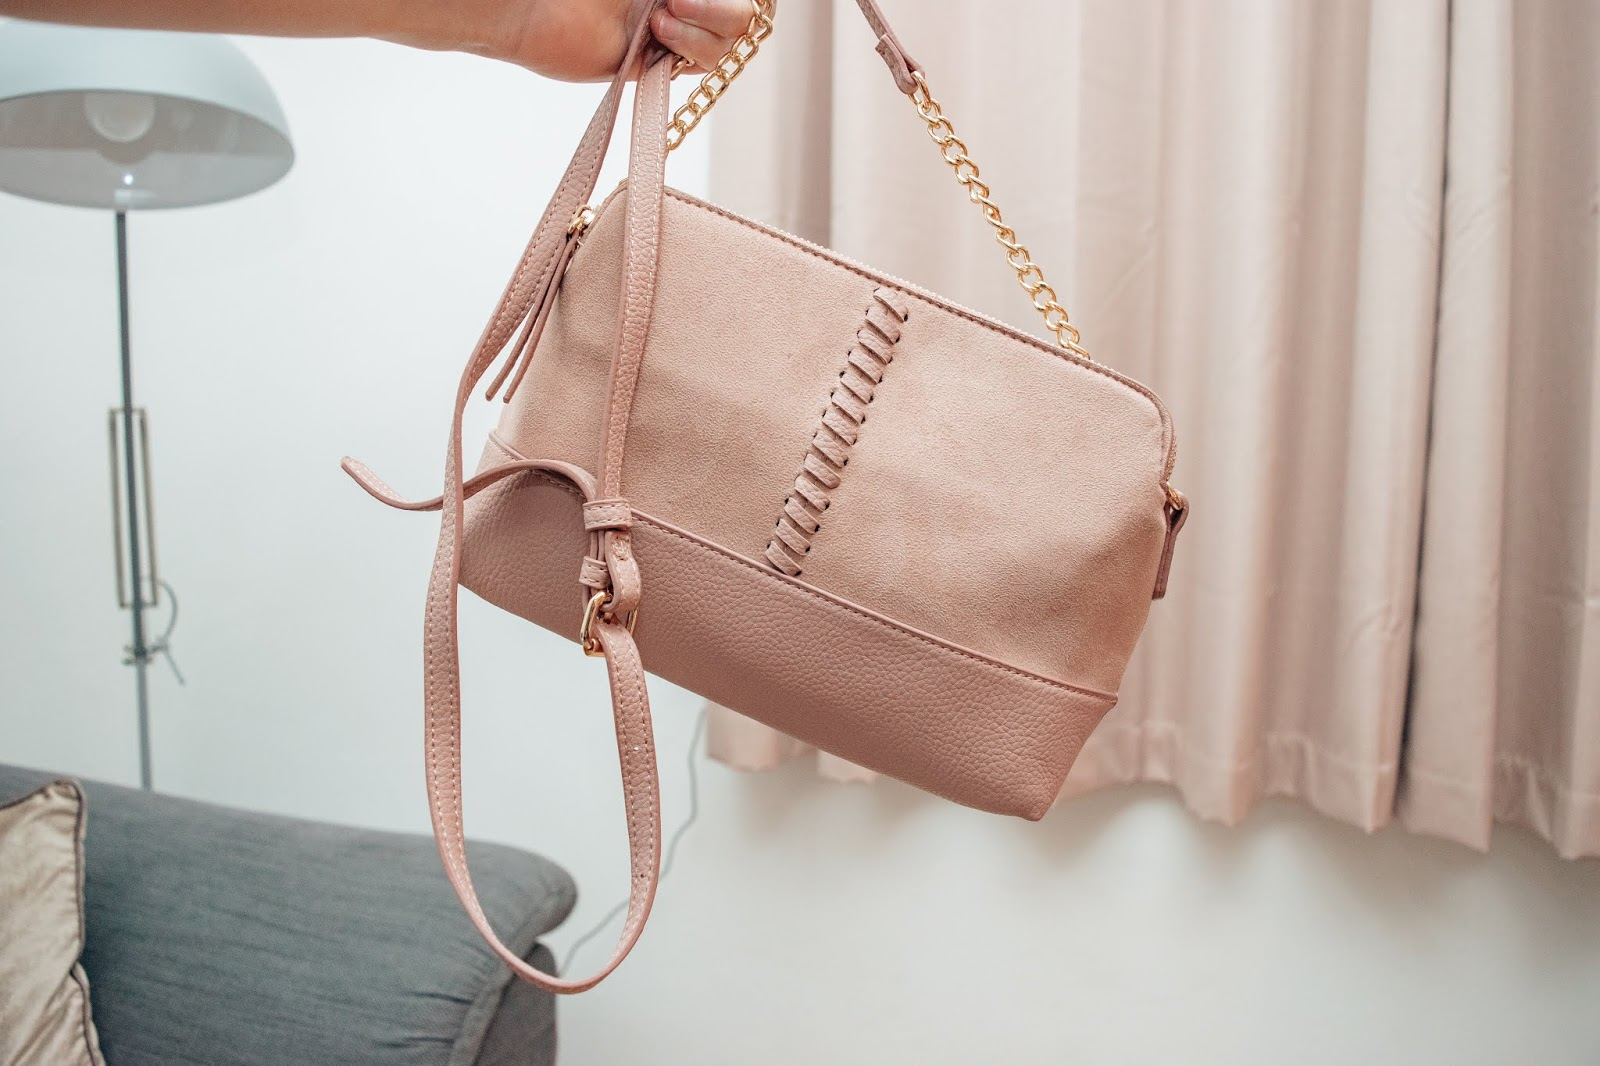 A pink cross body bag with a plait design down the middle and gold chain belted strap.